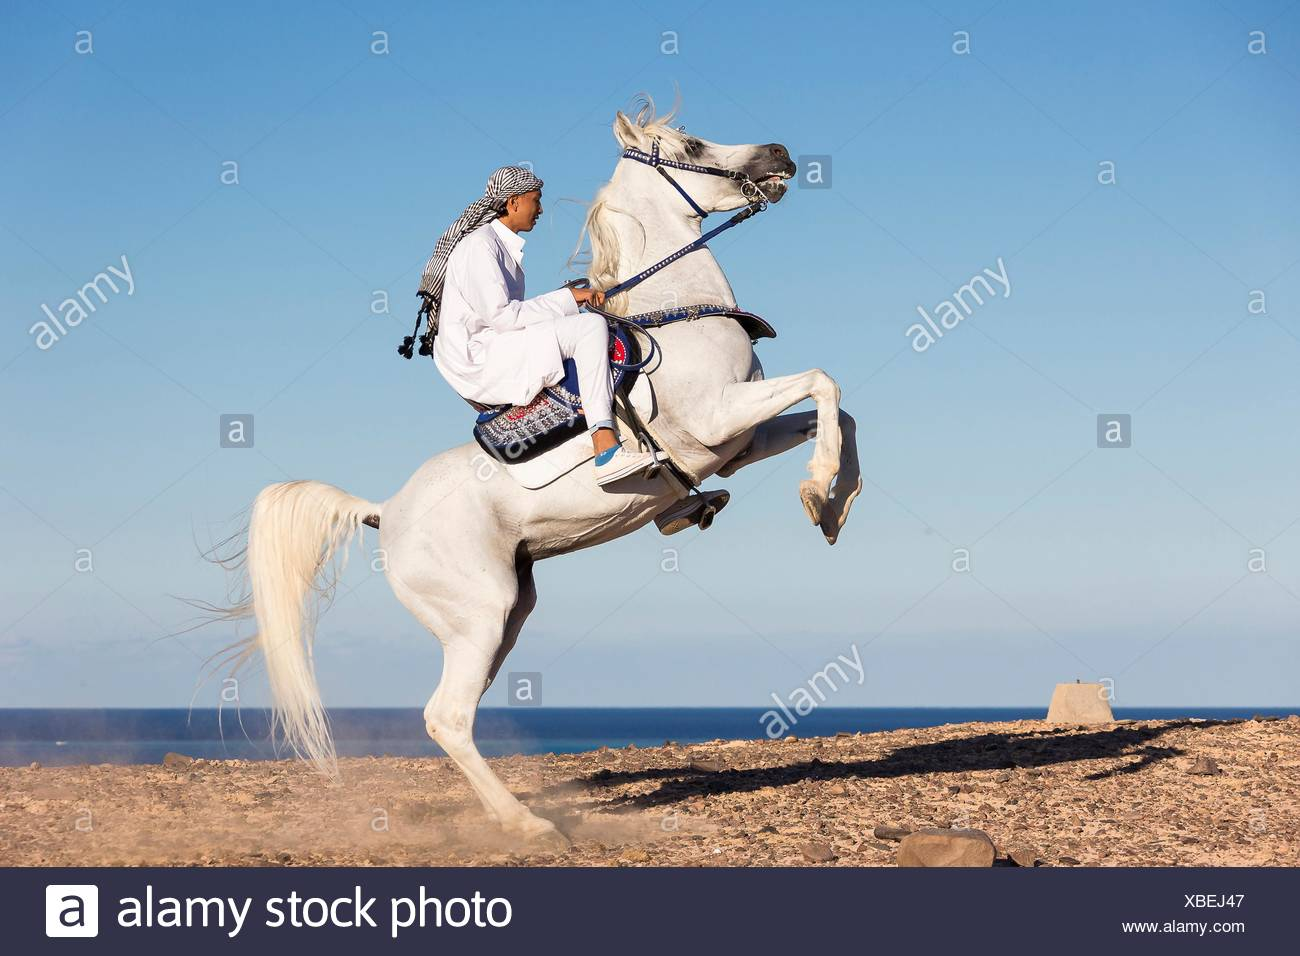 Arabian Horse Gray Stallion Rearing In The Desert With Rider In Traditional Dress Egypt Stock Photo Alamy